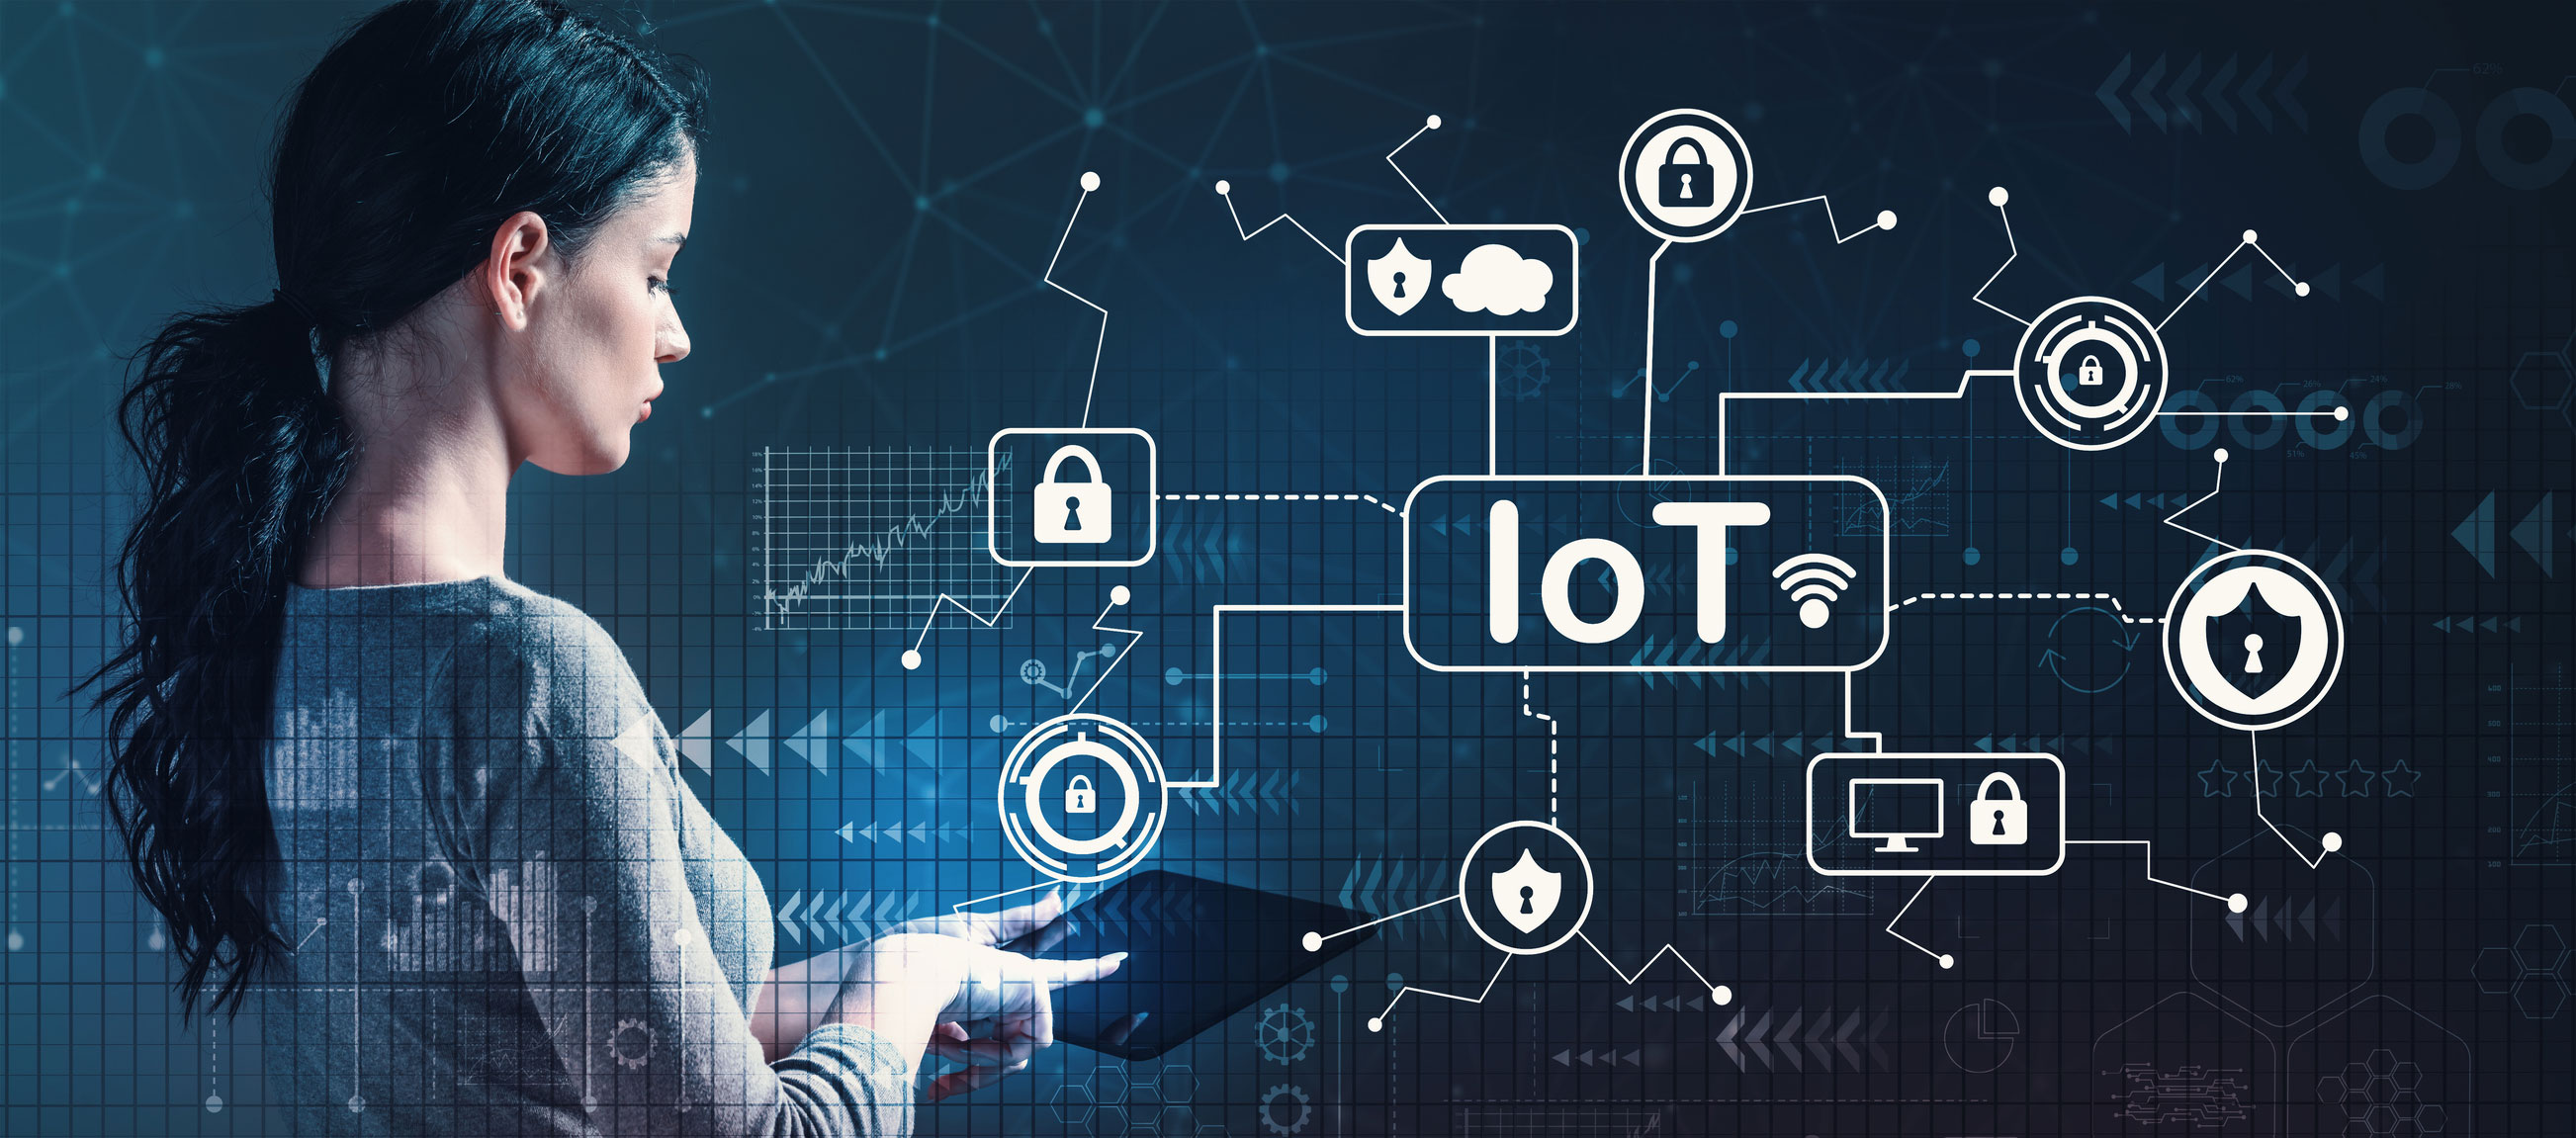 iot-networksecurity